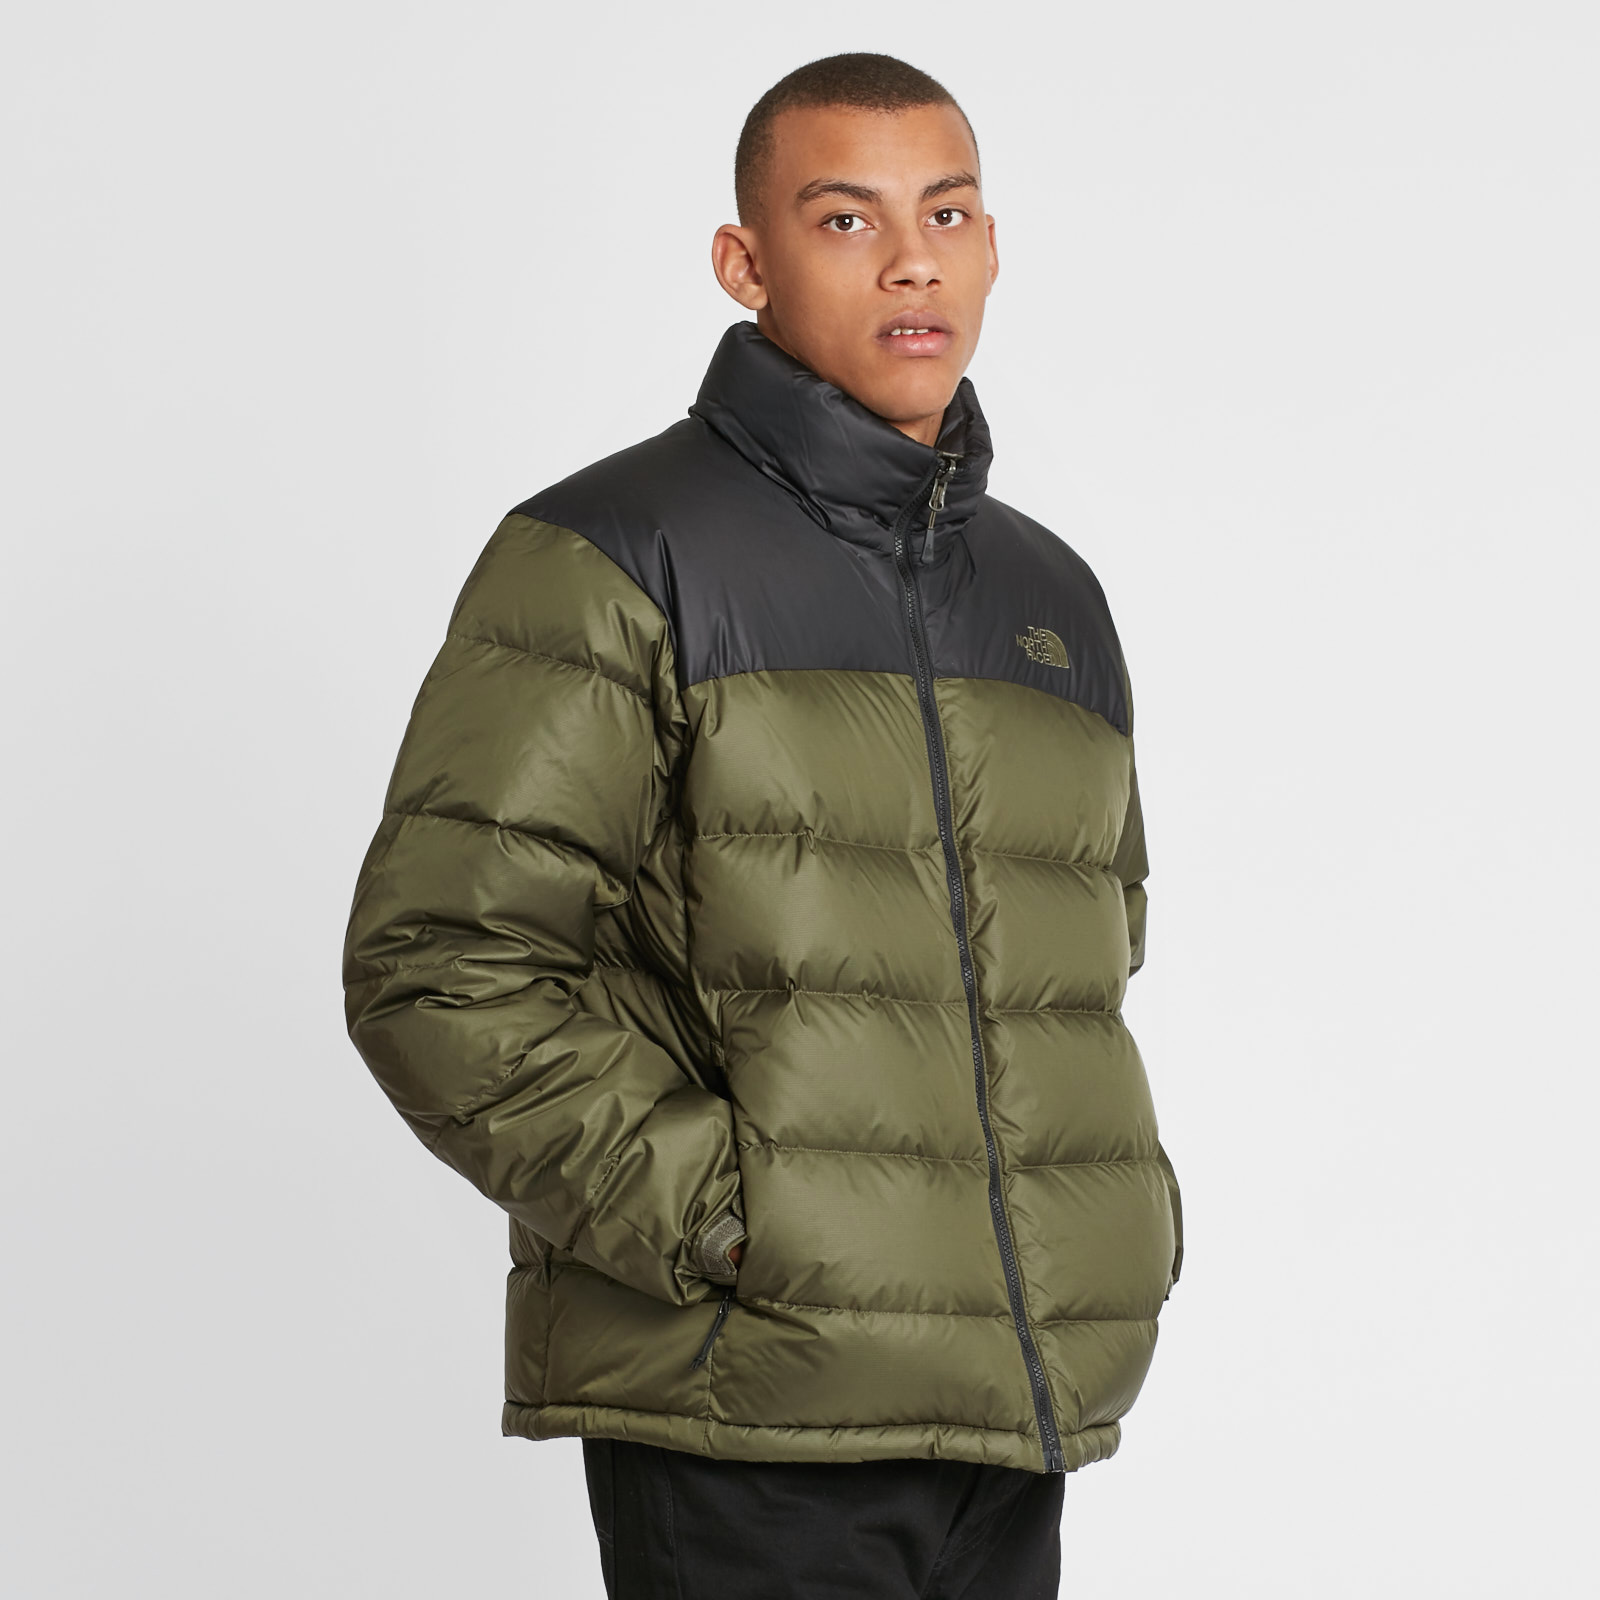 3362a82c6 The North Face M Nuptse 2 Jacket - T0aufdty1 - Sneakersnstuff ...